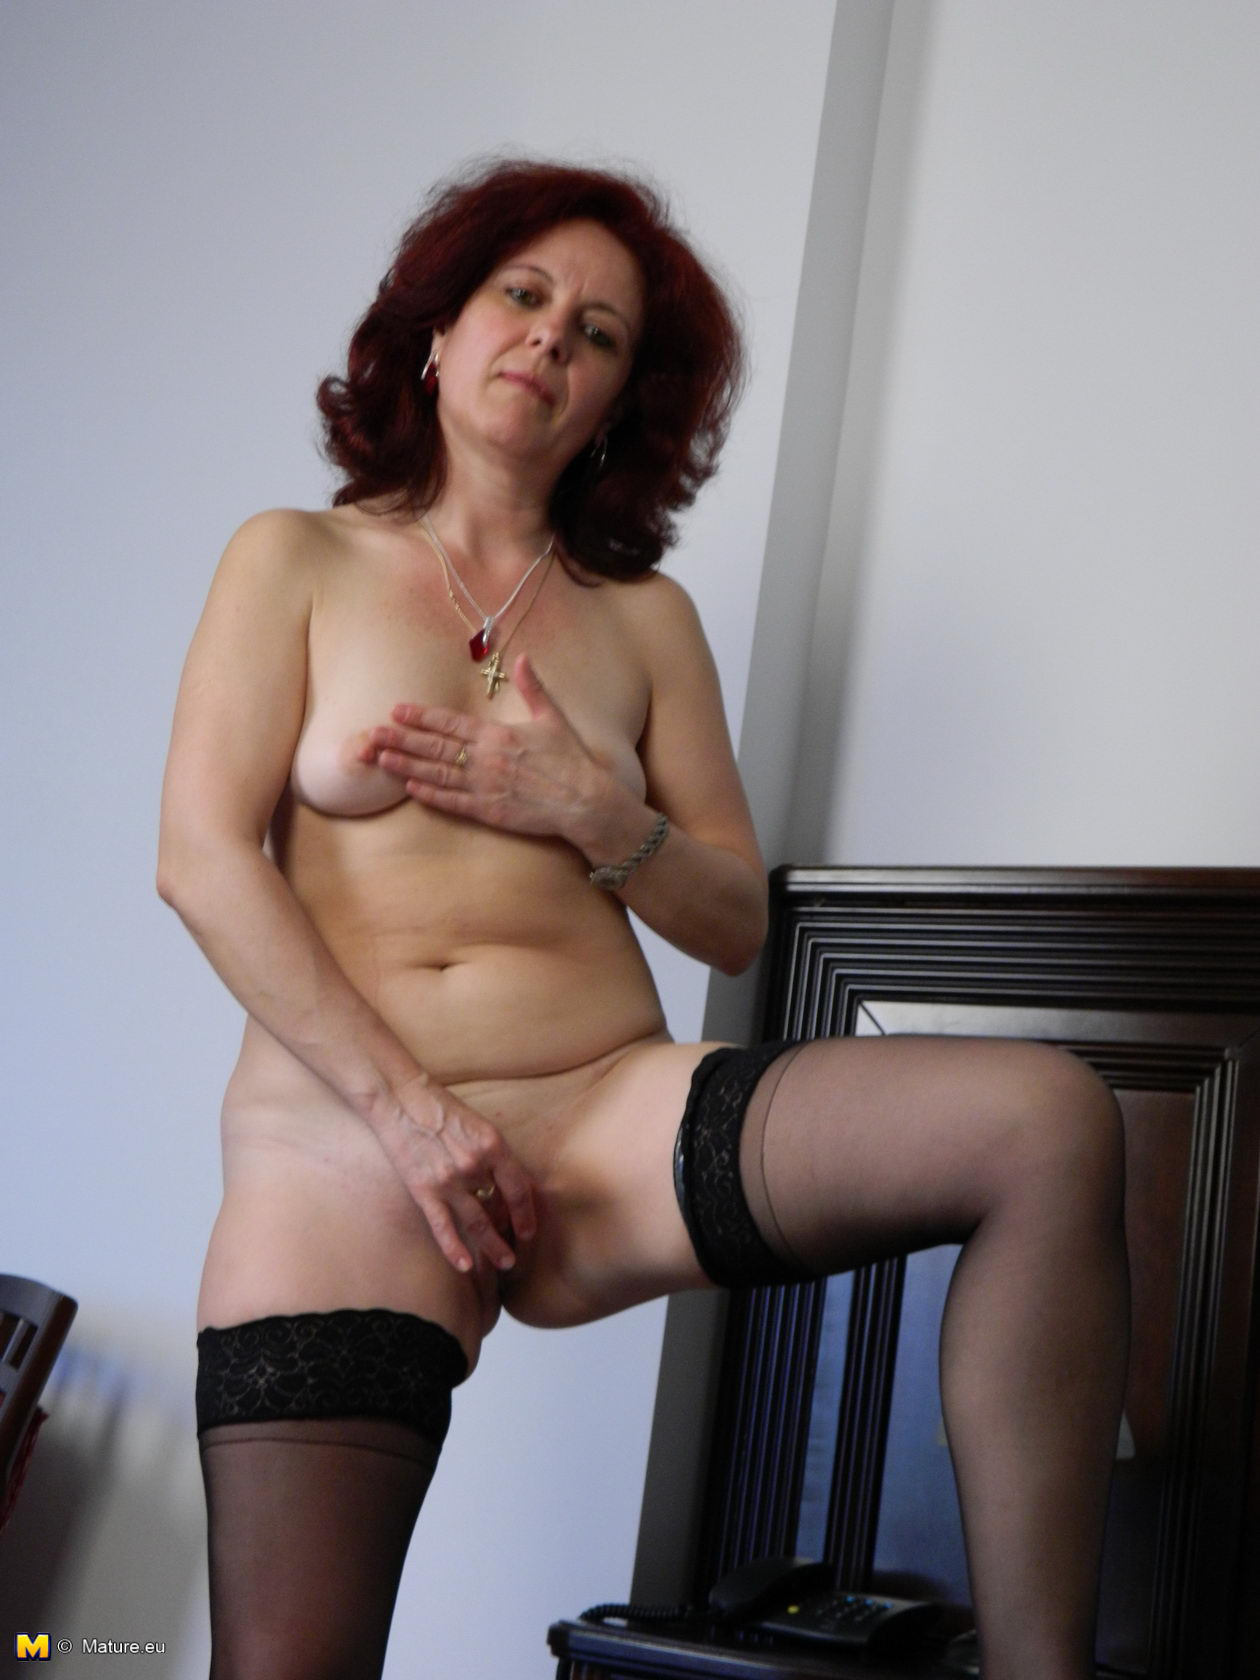 Mature Eu Horny Mature Slut Loves To Get Naked And Naughty 182377